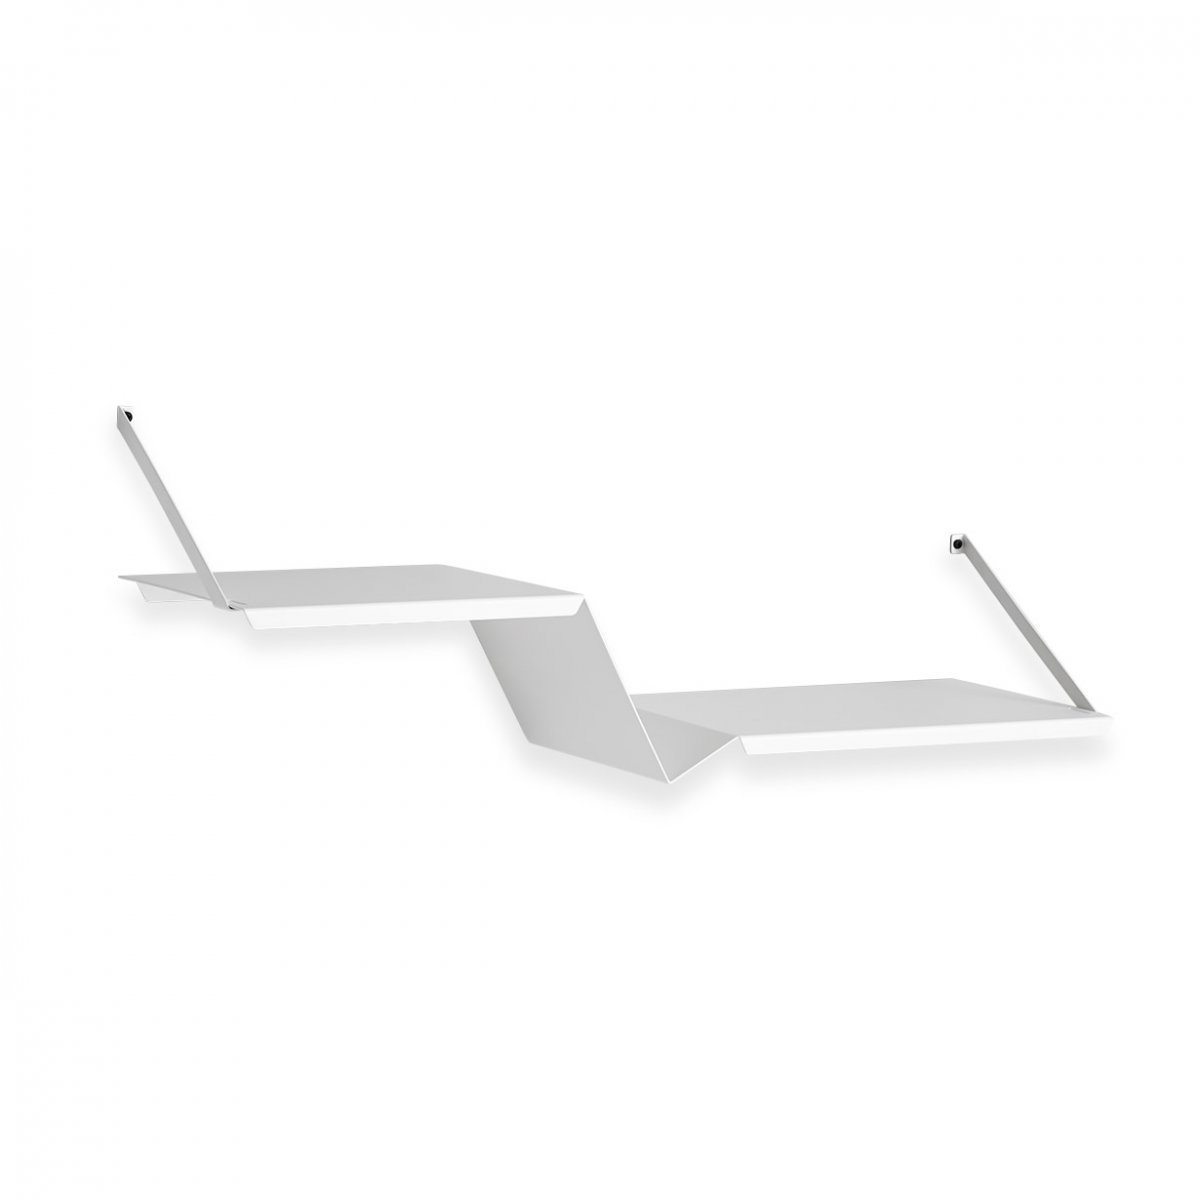 Fold shelf by Woud | LOVEThESIGN - photo#29